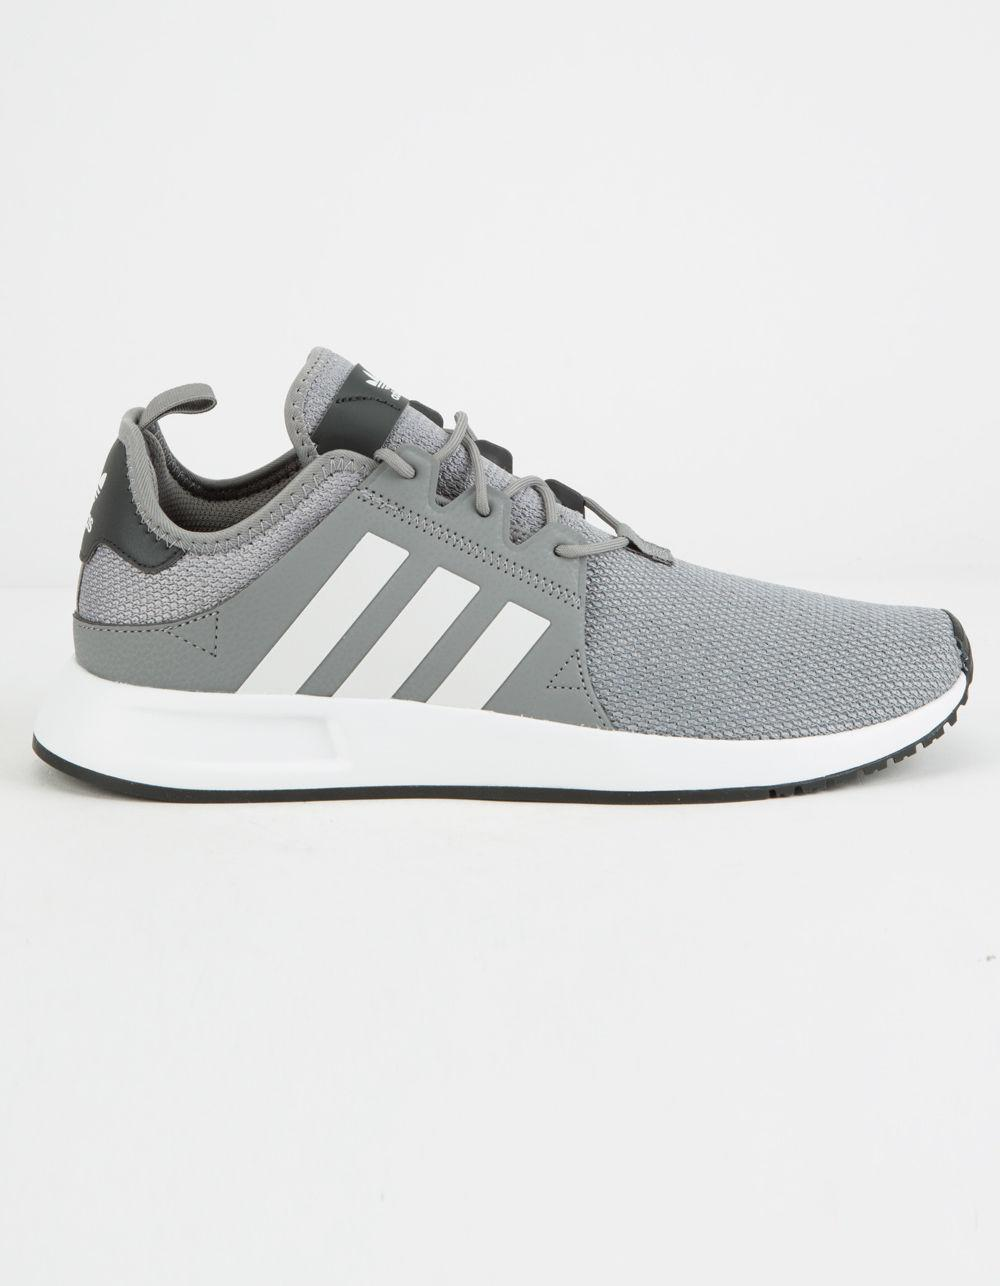 new concept 8cfd4 8227a adidas-GREY-X plr-Grey-White-Shoes.jpeg